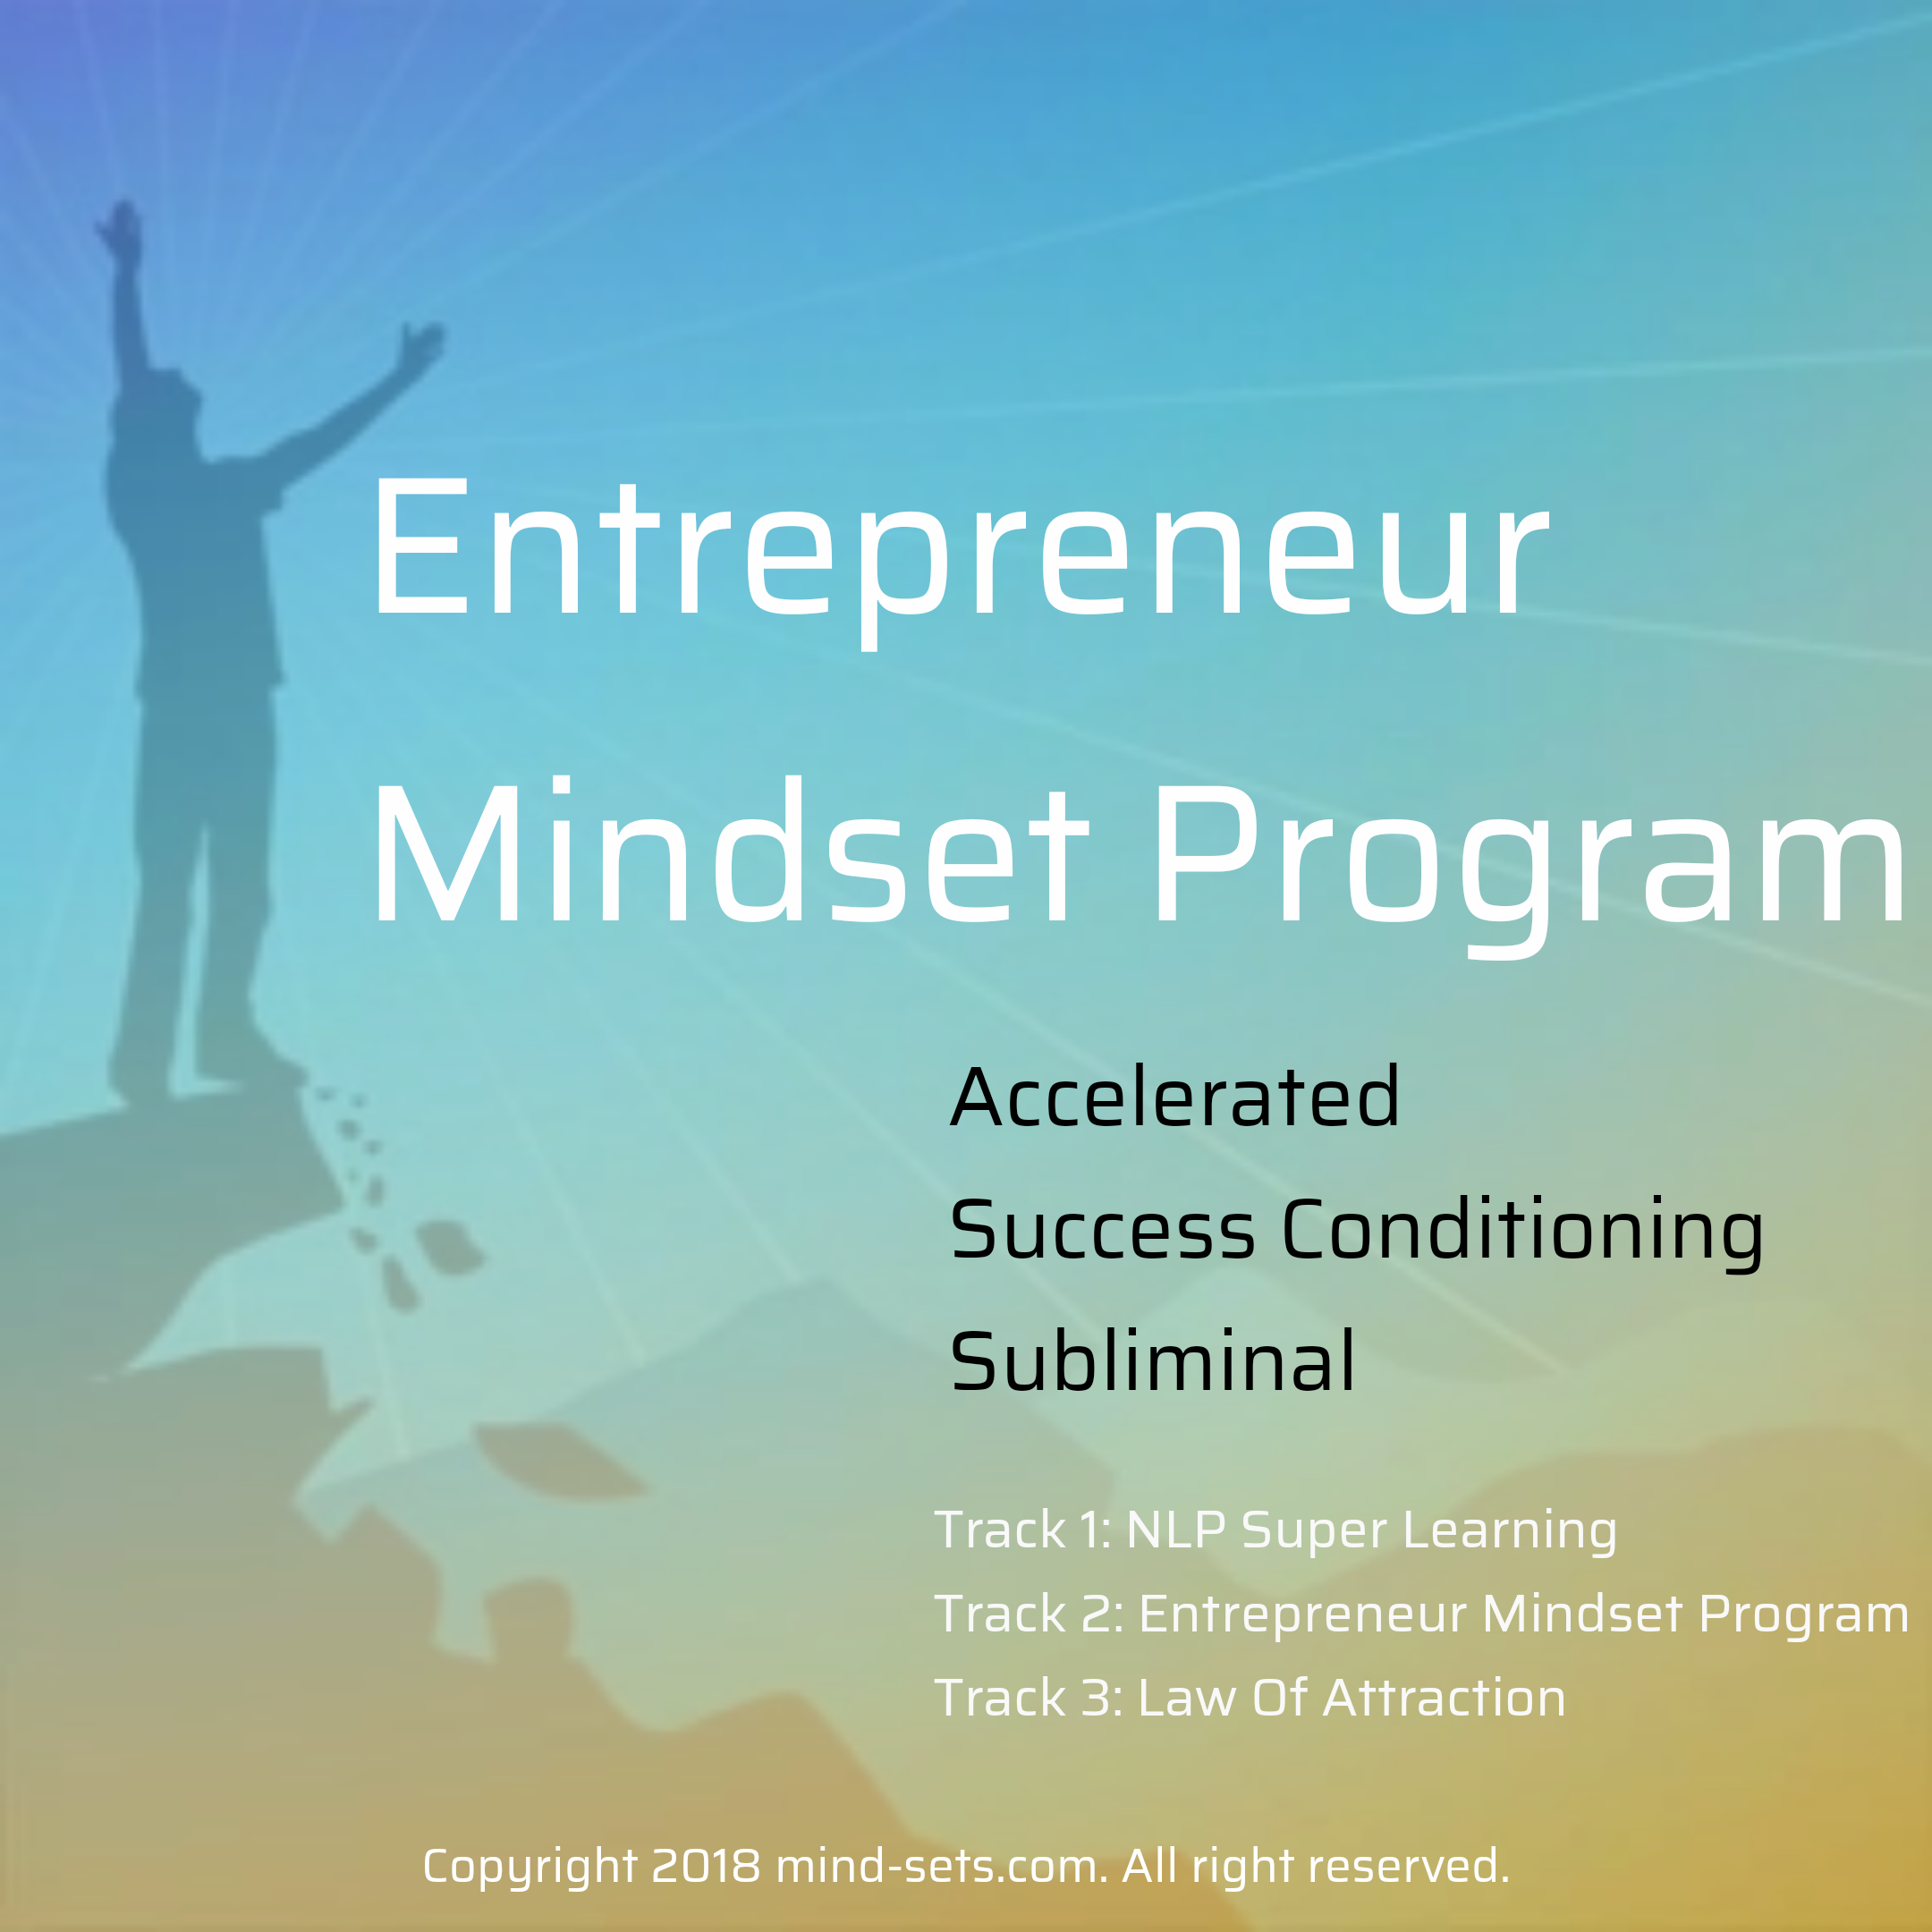 Entrepreneur Mindset Program